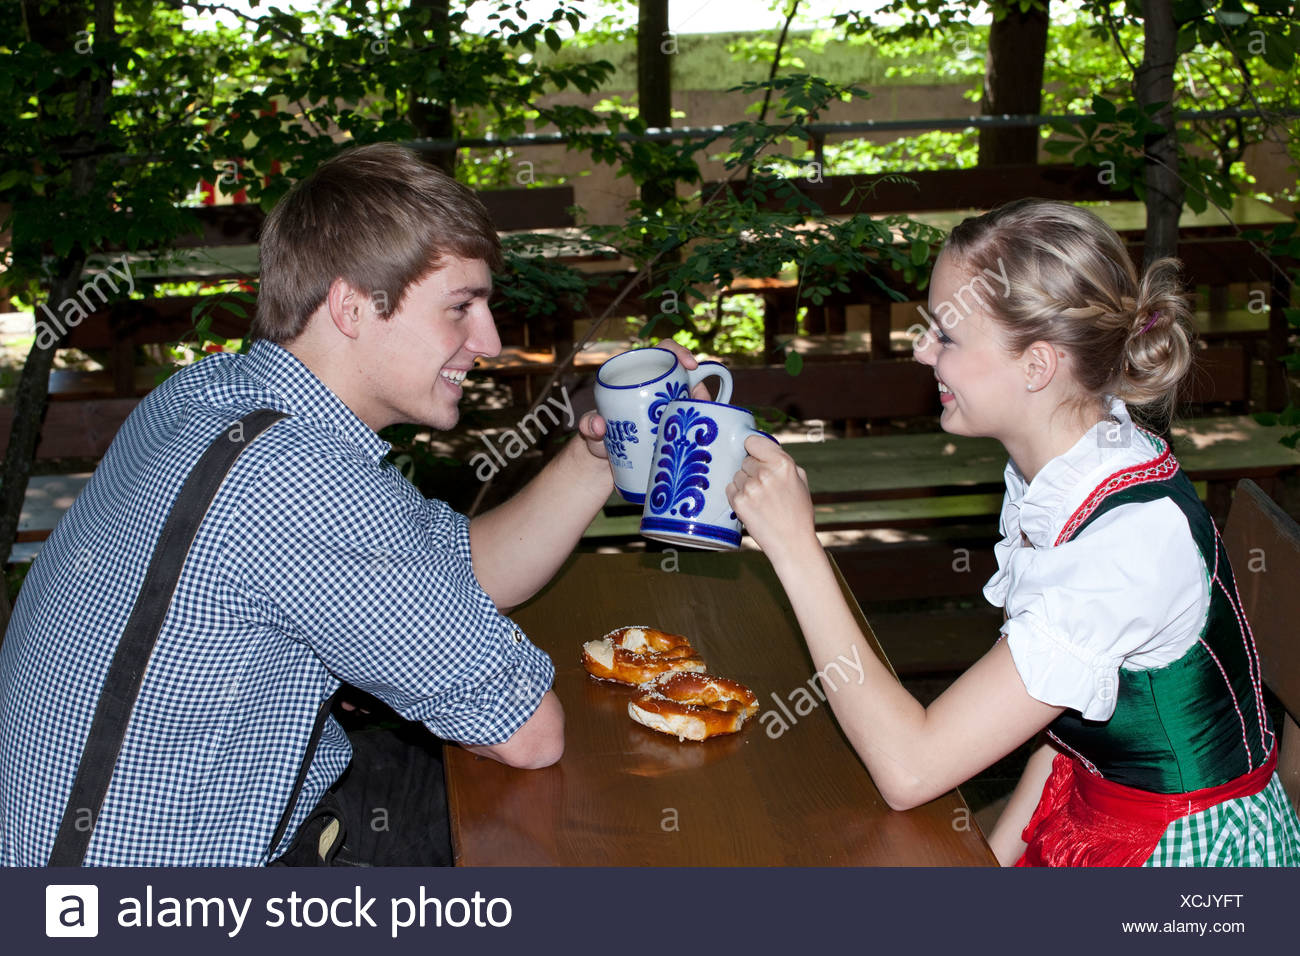 Young Couple In Dirndl And Lederhosen Clinking Their Beer Steins